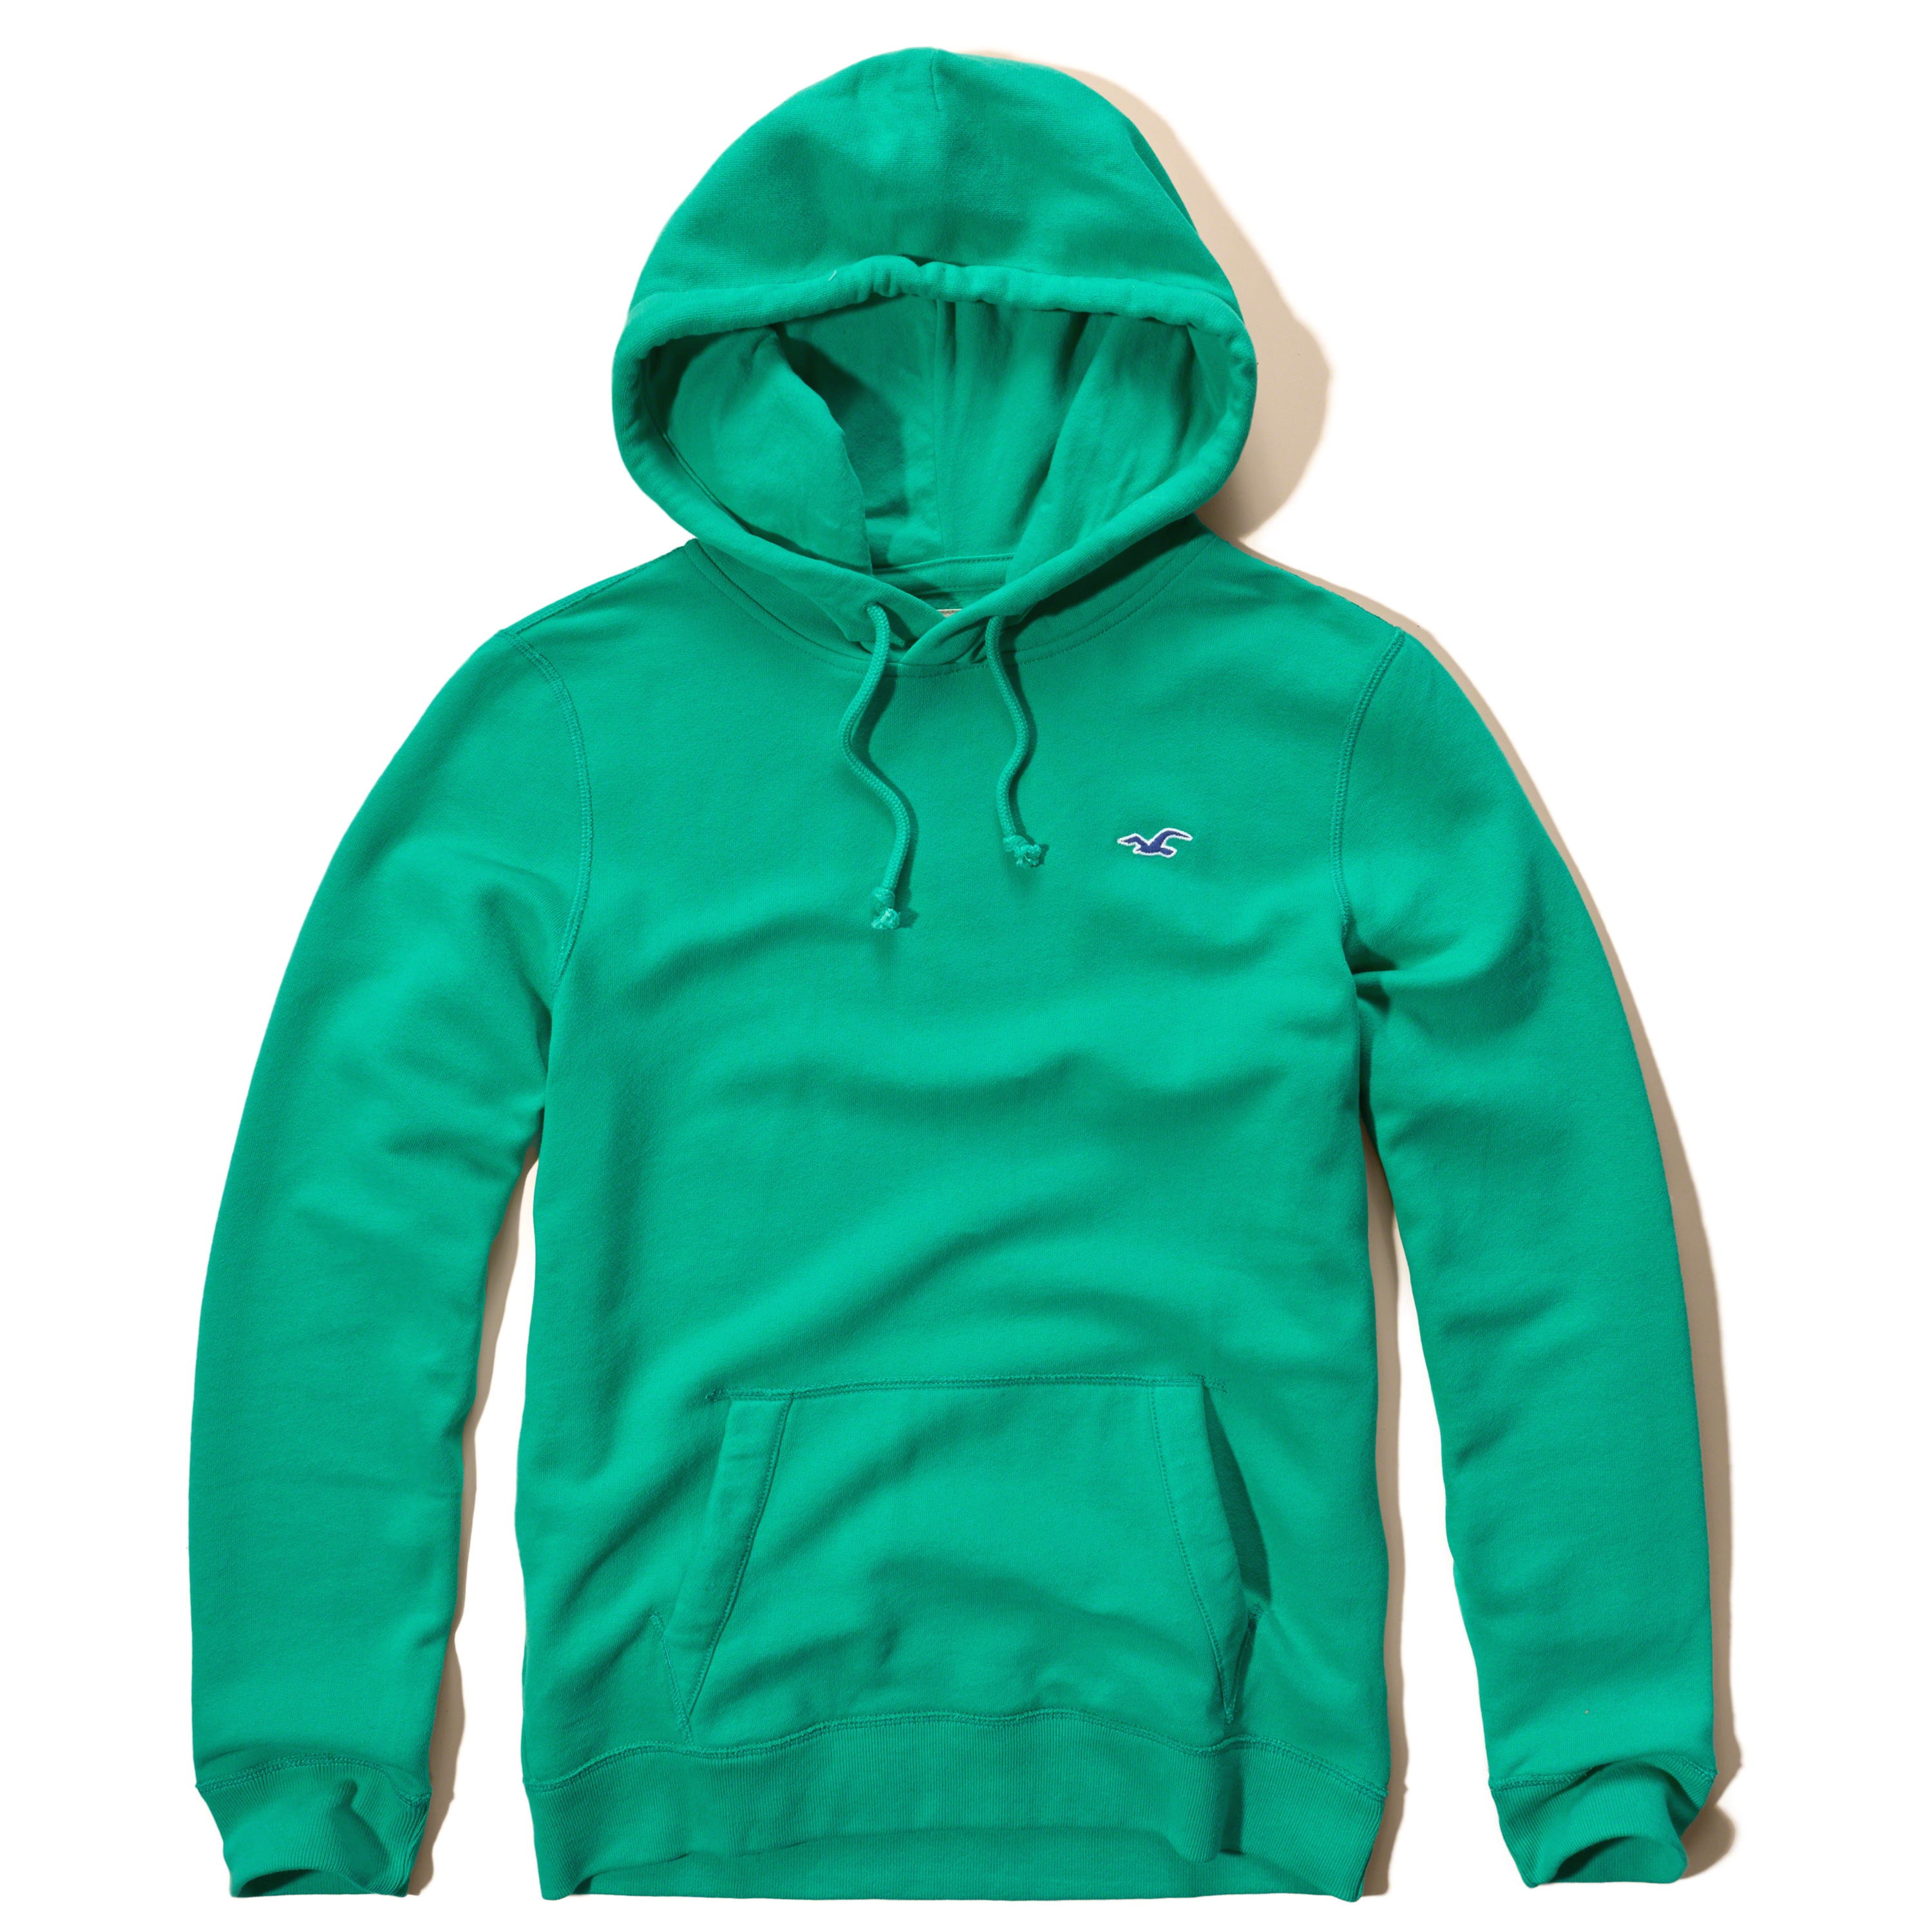 Hollister Iconic Fleece Hoodie In Green For Men